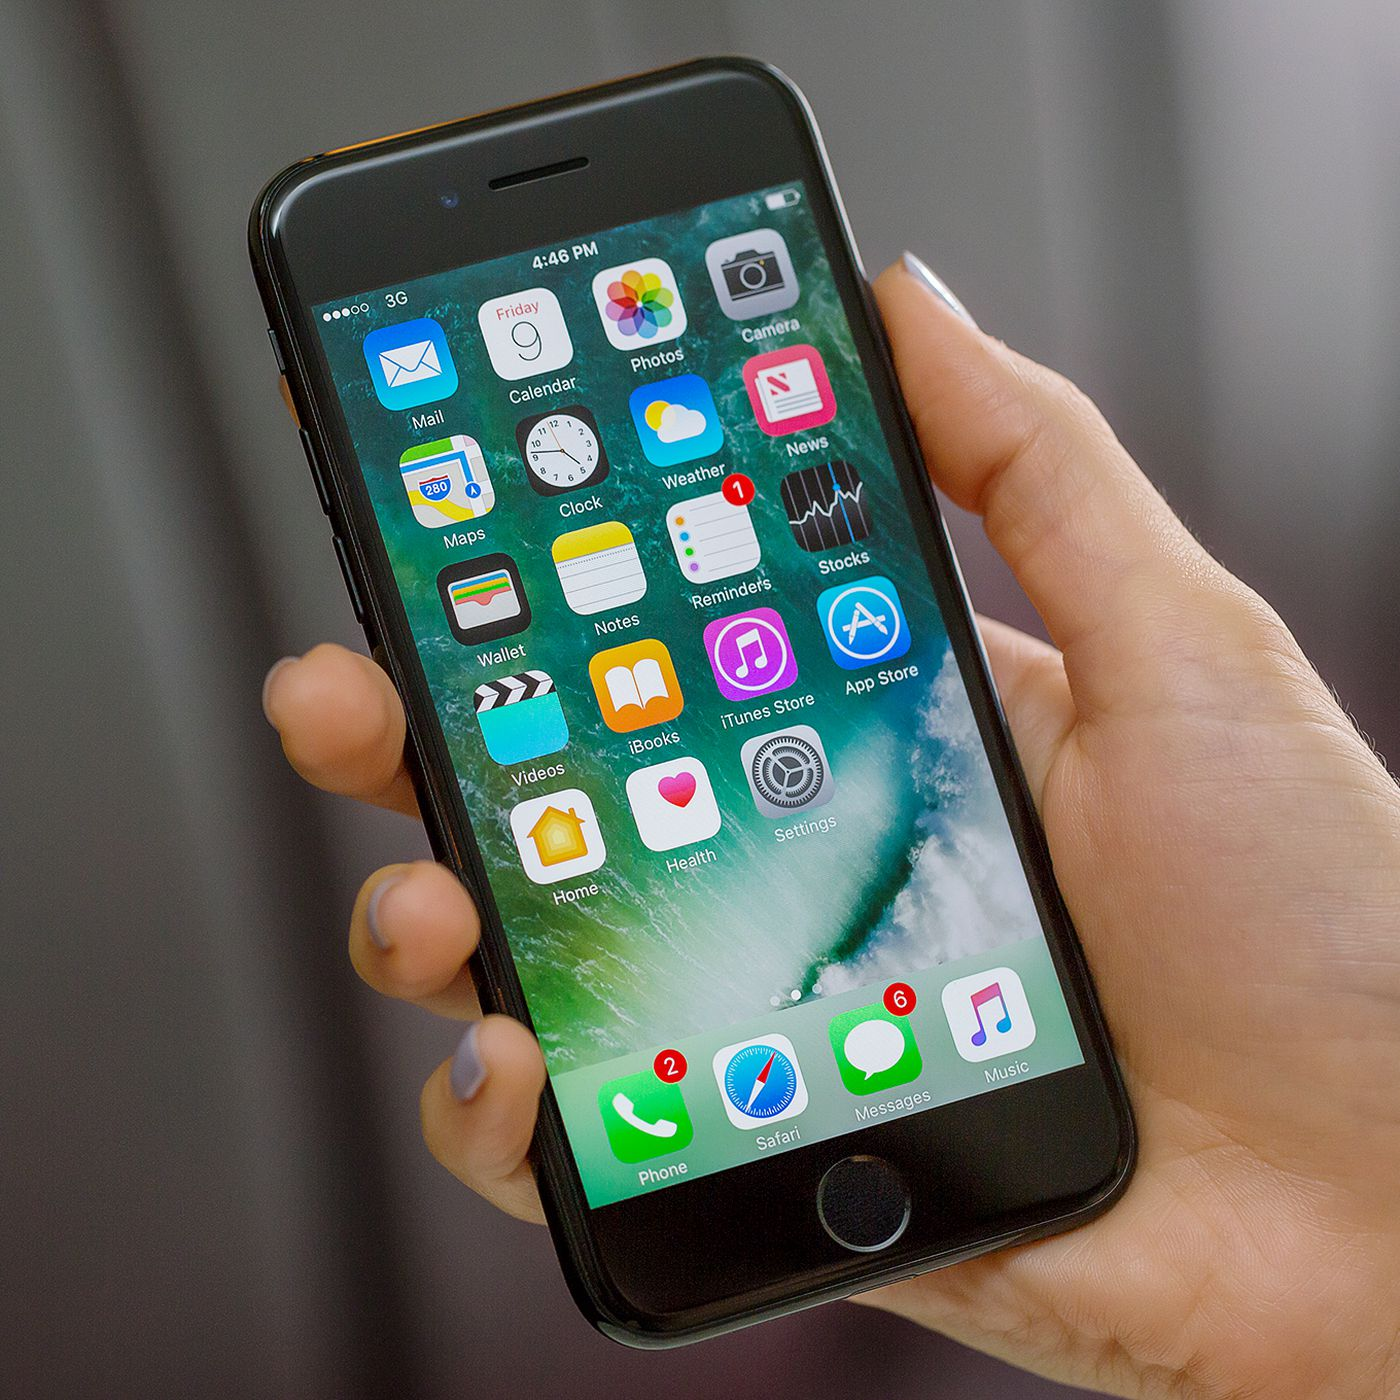 Apple leak shows how it decides to repair or replace iPhones